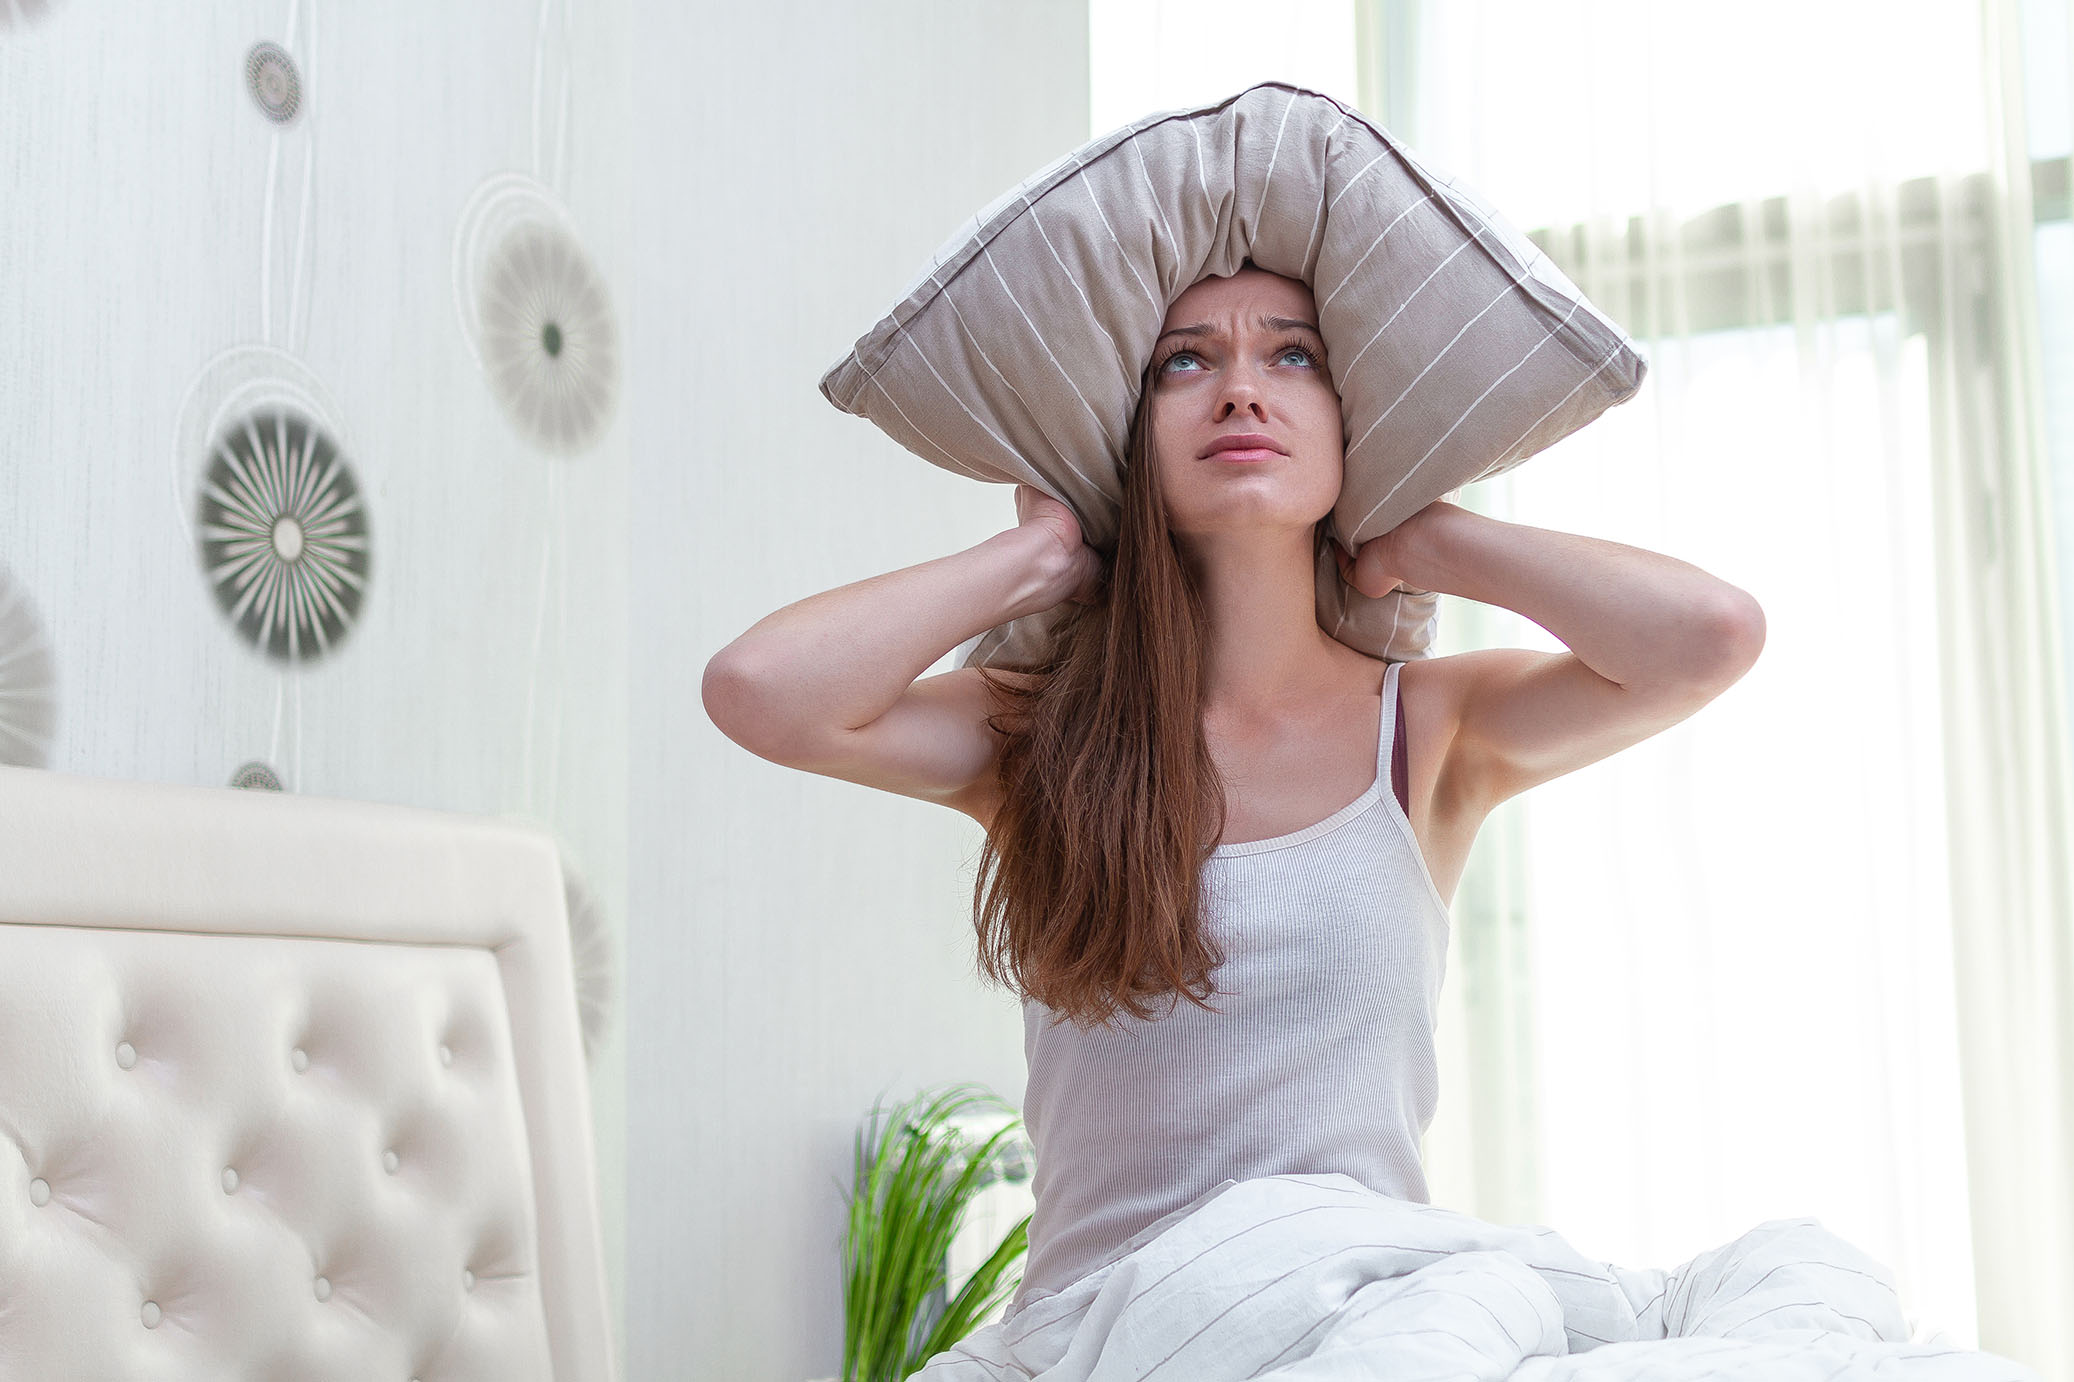 sad-woman-suffering-disturbed-by-noisy-neighbors-covering-her-ears-with-pillow